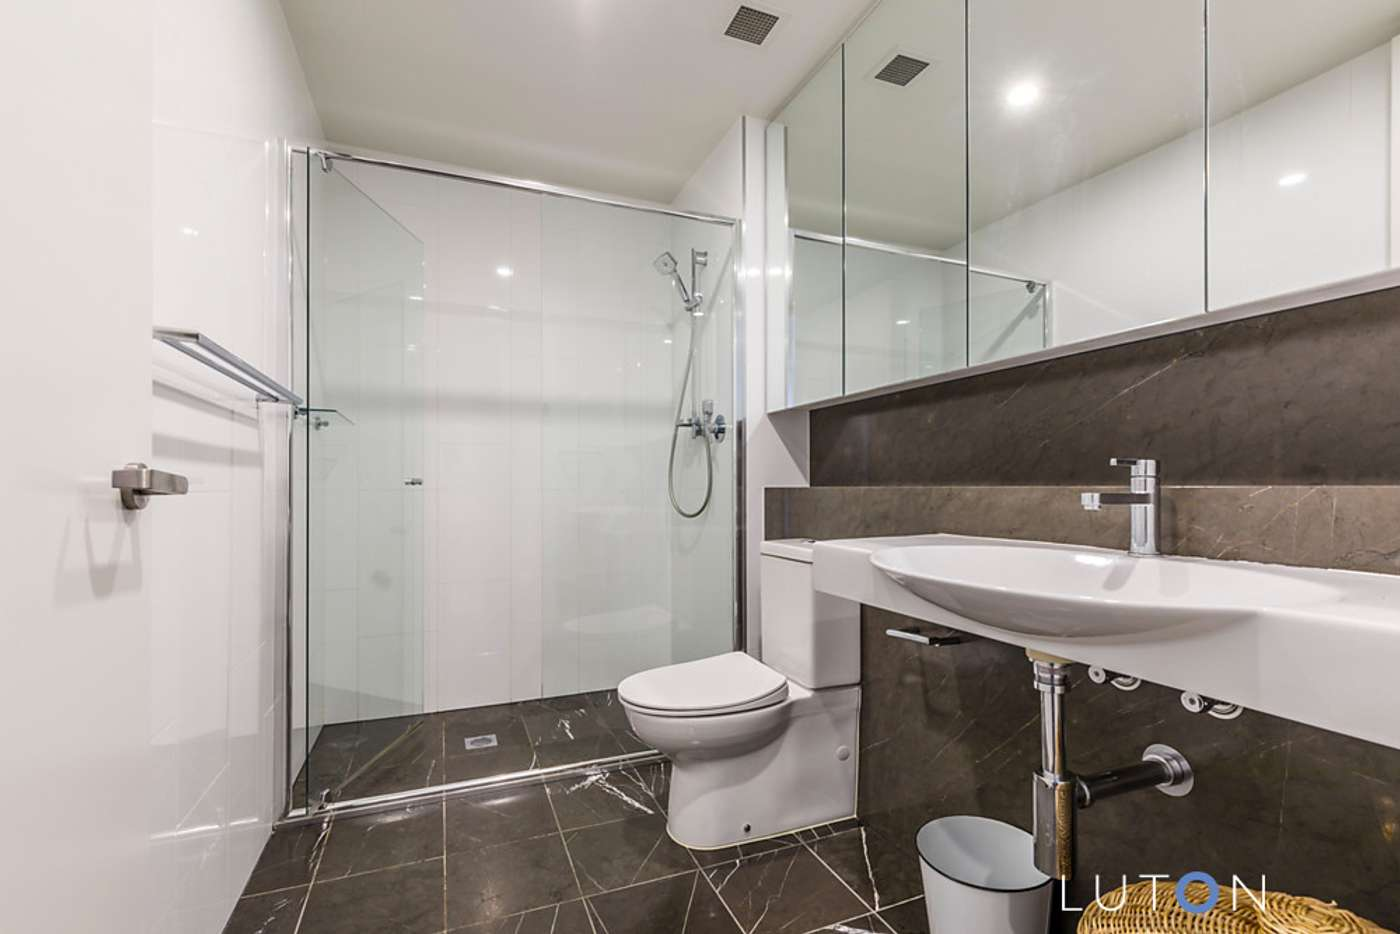 Seventh view of Homely apartment listing, 50/18 Austin Street, Griffith ACT 2603